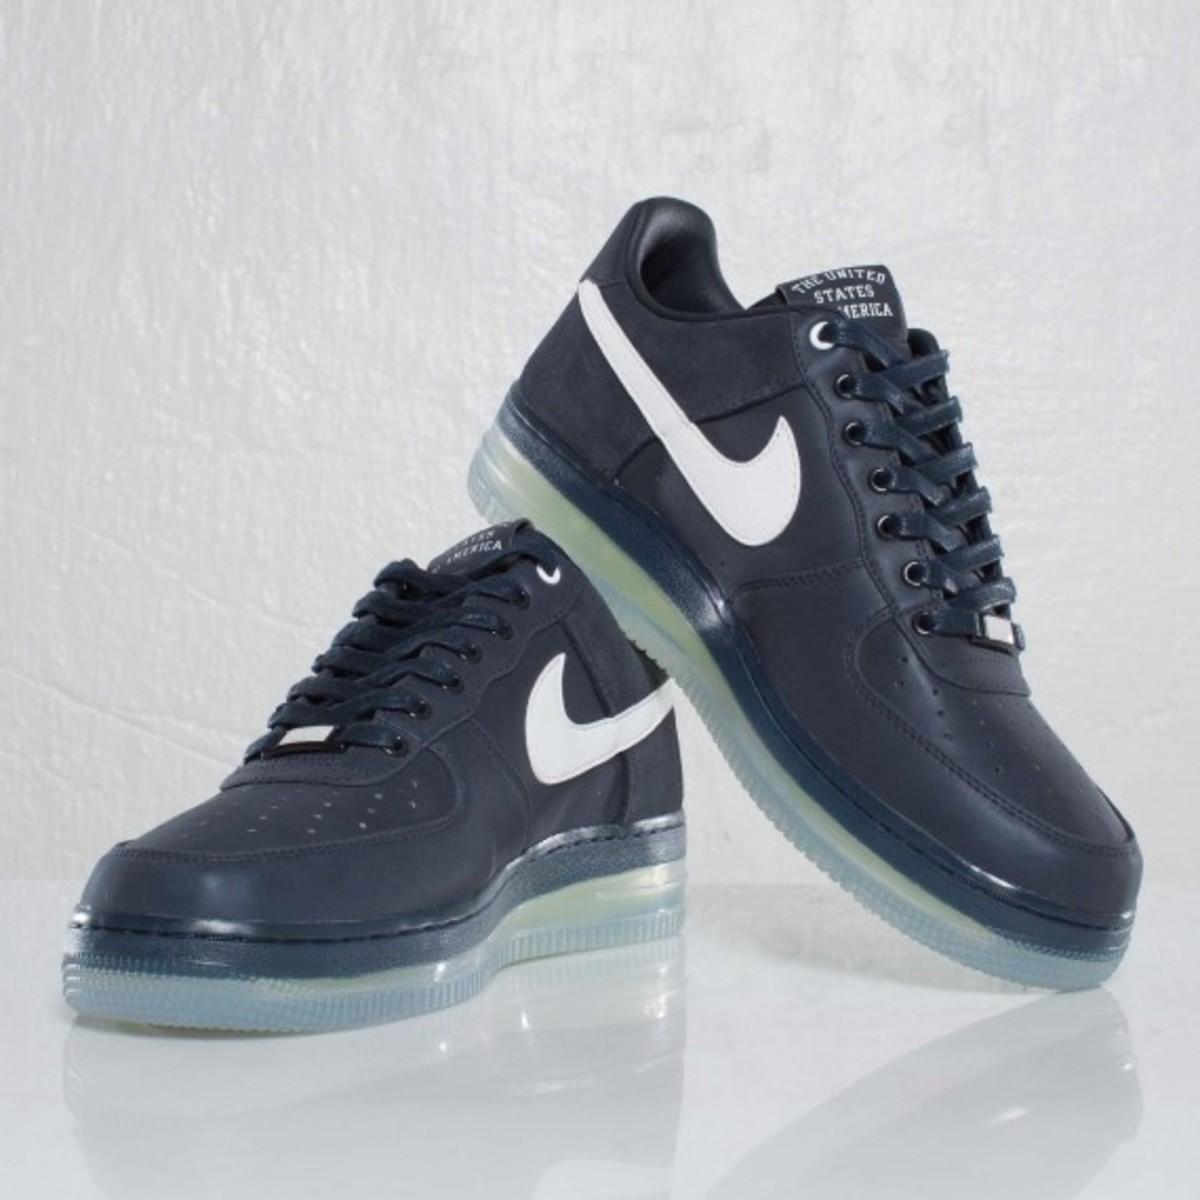 nike-air-force-1-low-medal-stand-pack-6